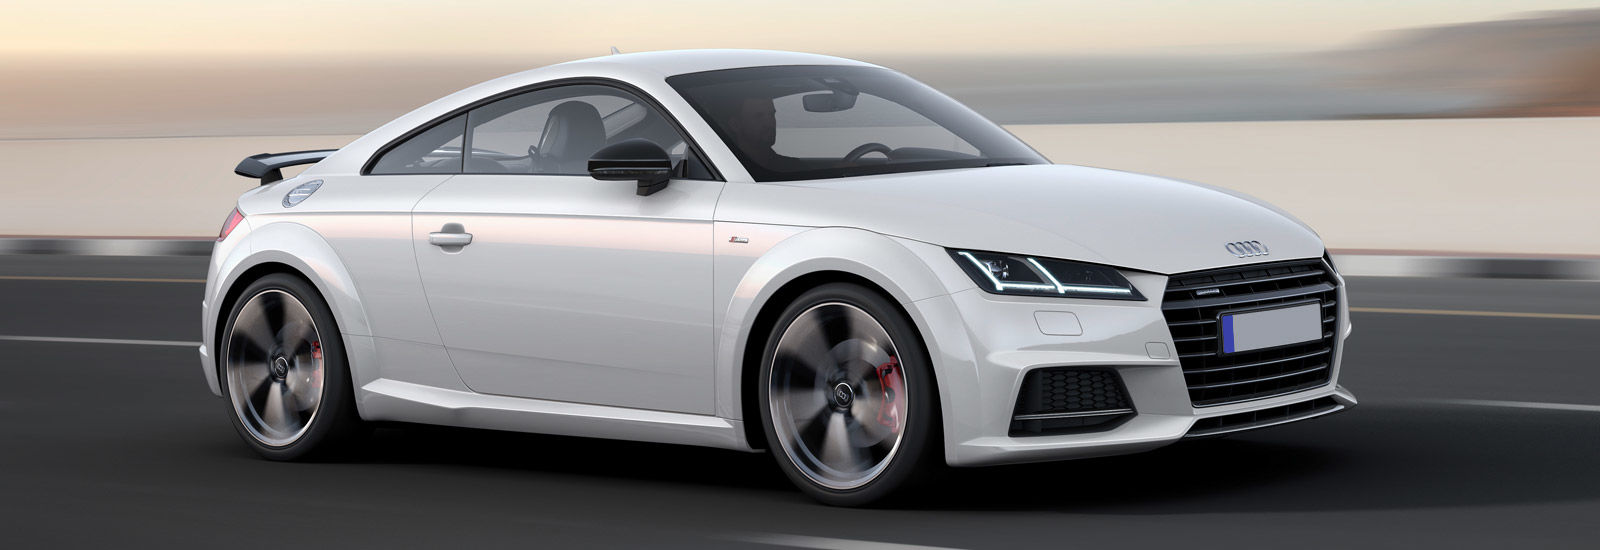 audi tt and roadster s line competition guide carwow. Black Bedroom Furniture Sets. Home Design Ideas